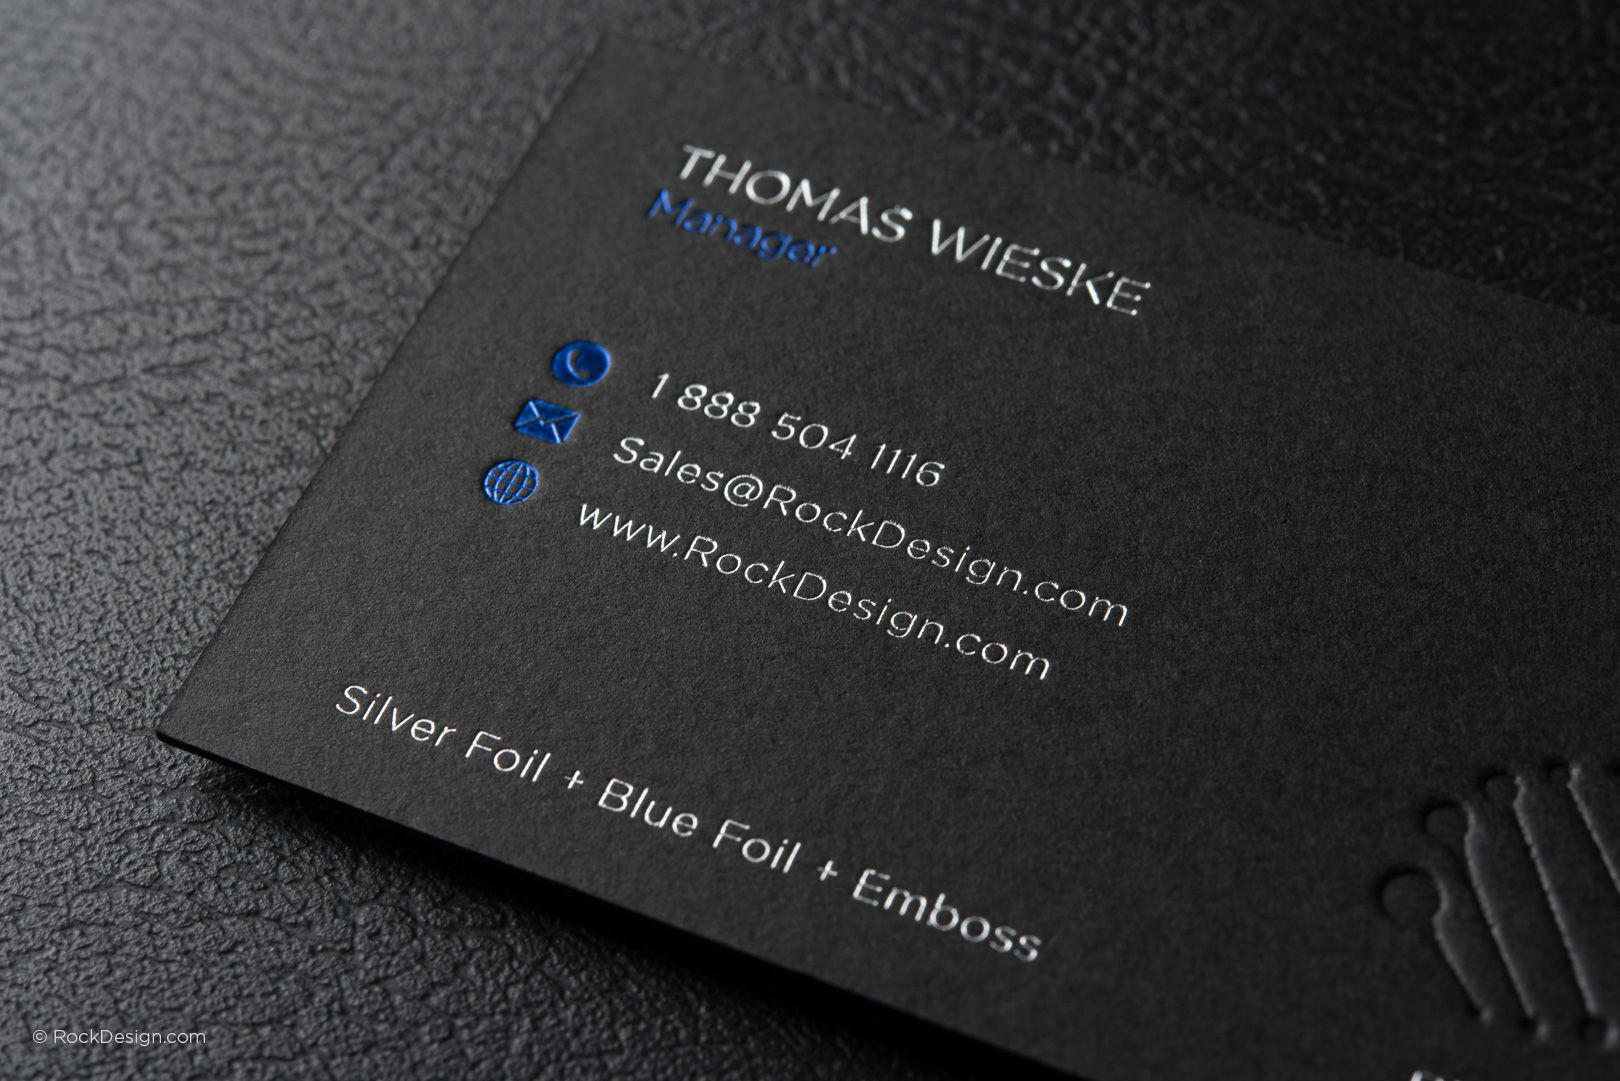 Modern professional black business card template with foil dna modern professional black business card template with foil dna works rockdesign luxury business card reheart Images